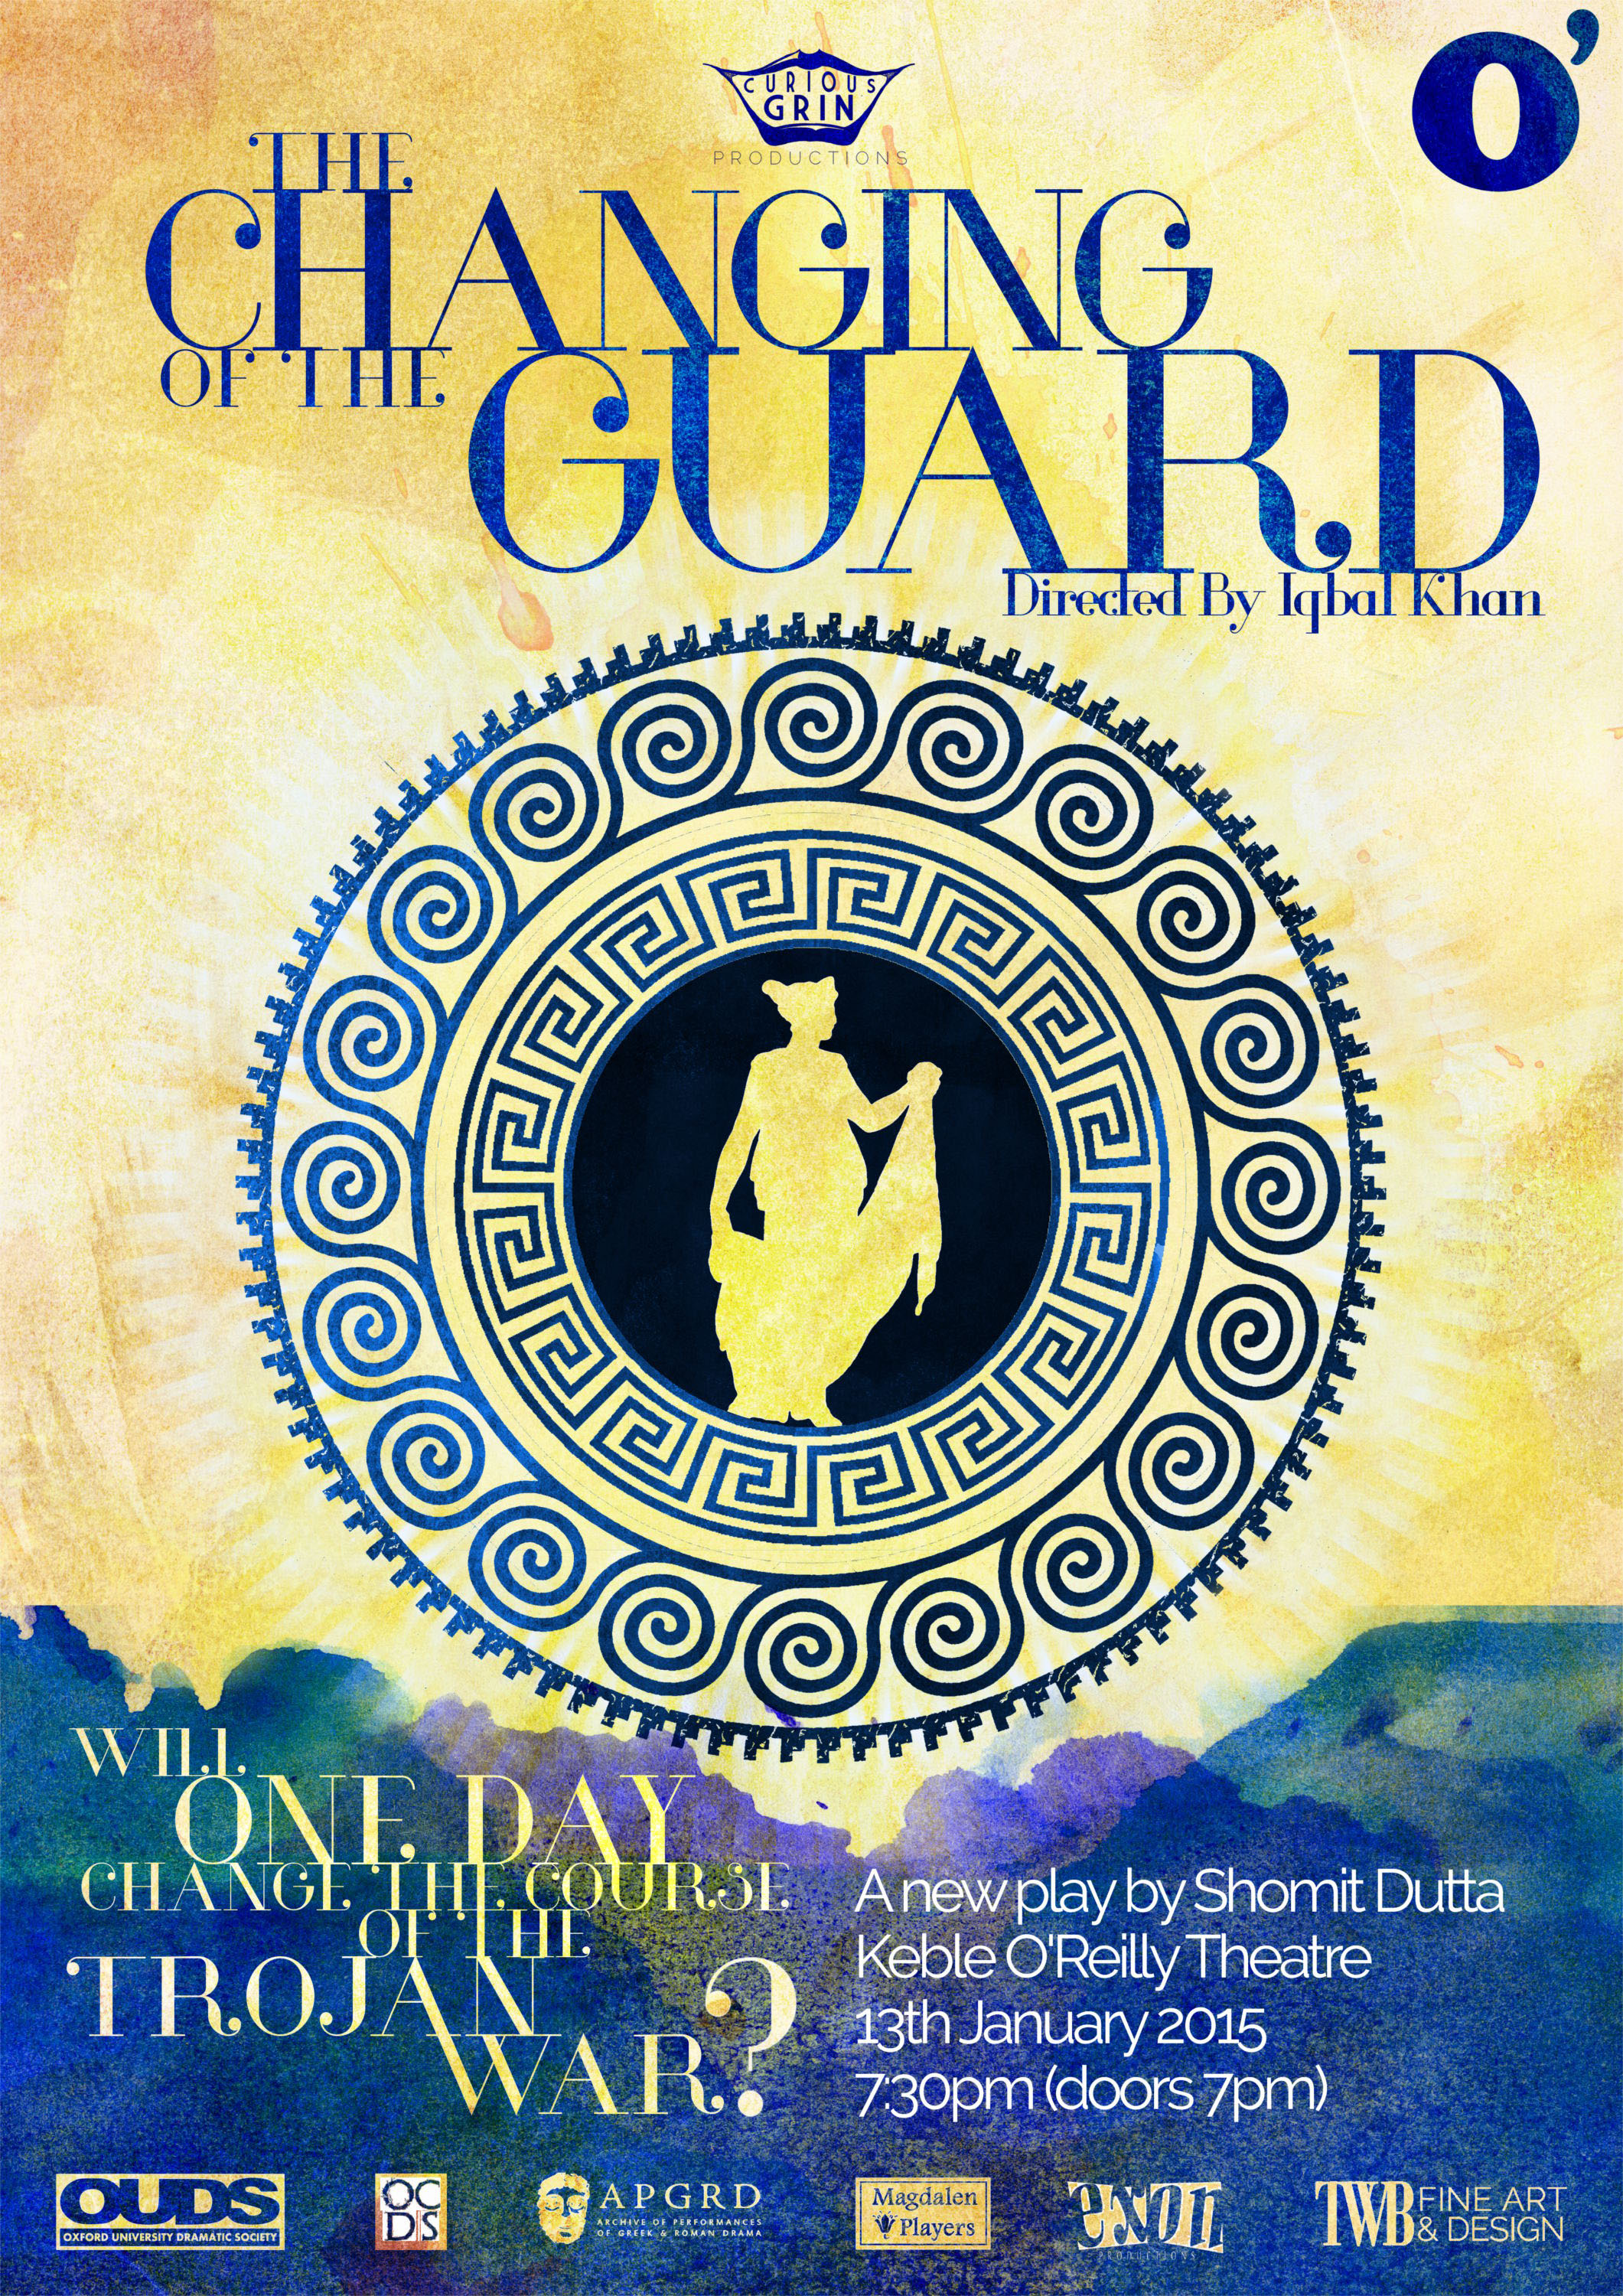 Poster for Changing of the Guard event